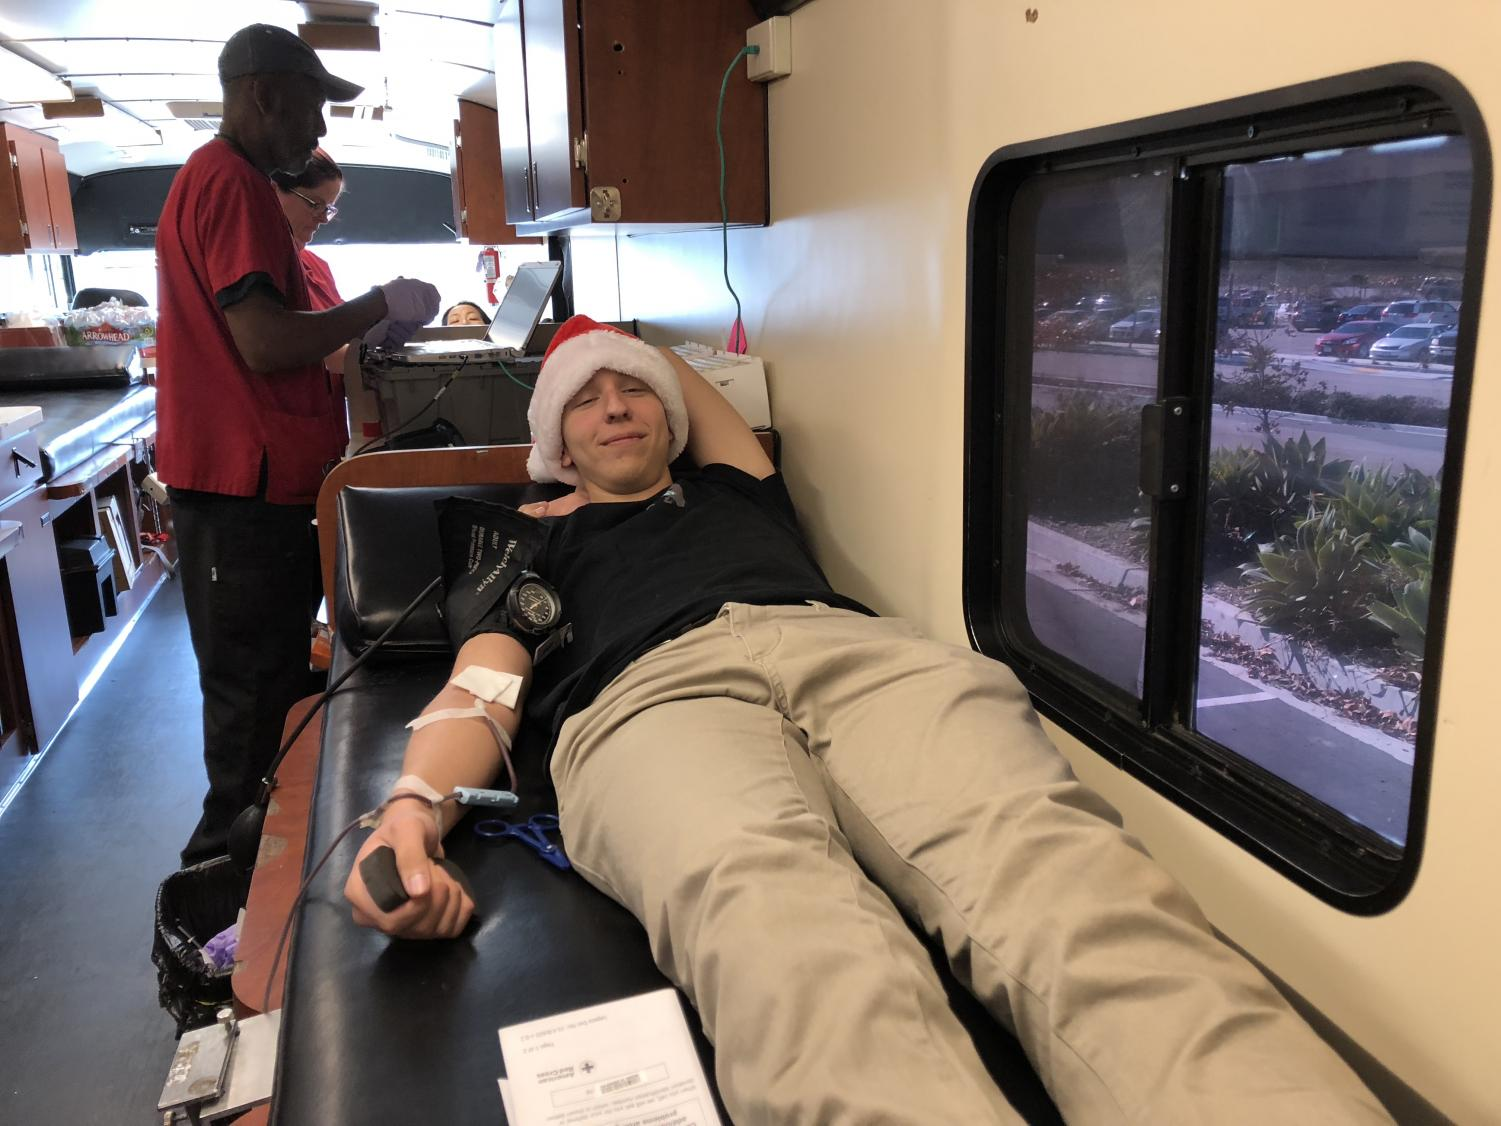 Senior+Nick+Rhead+gives+blood+inside+the+American+Red+Cross+blood+donation+bus+on+Wednesday.+The+Red+Cross+provides+about+40+percent+of+America%E2%80%99s+blood+all+of+which+is+gathered+from+volunteers+from+around+the+country.